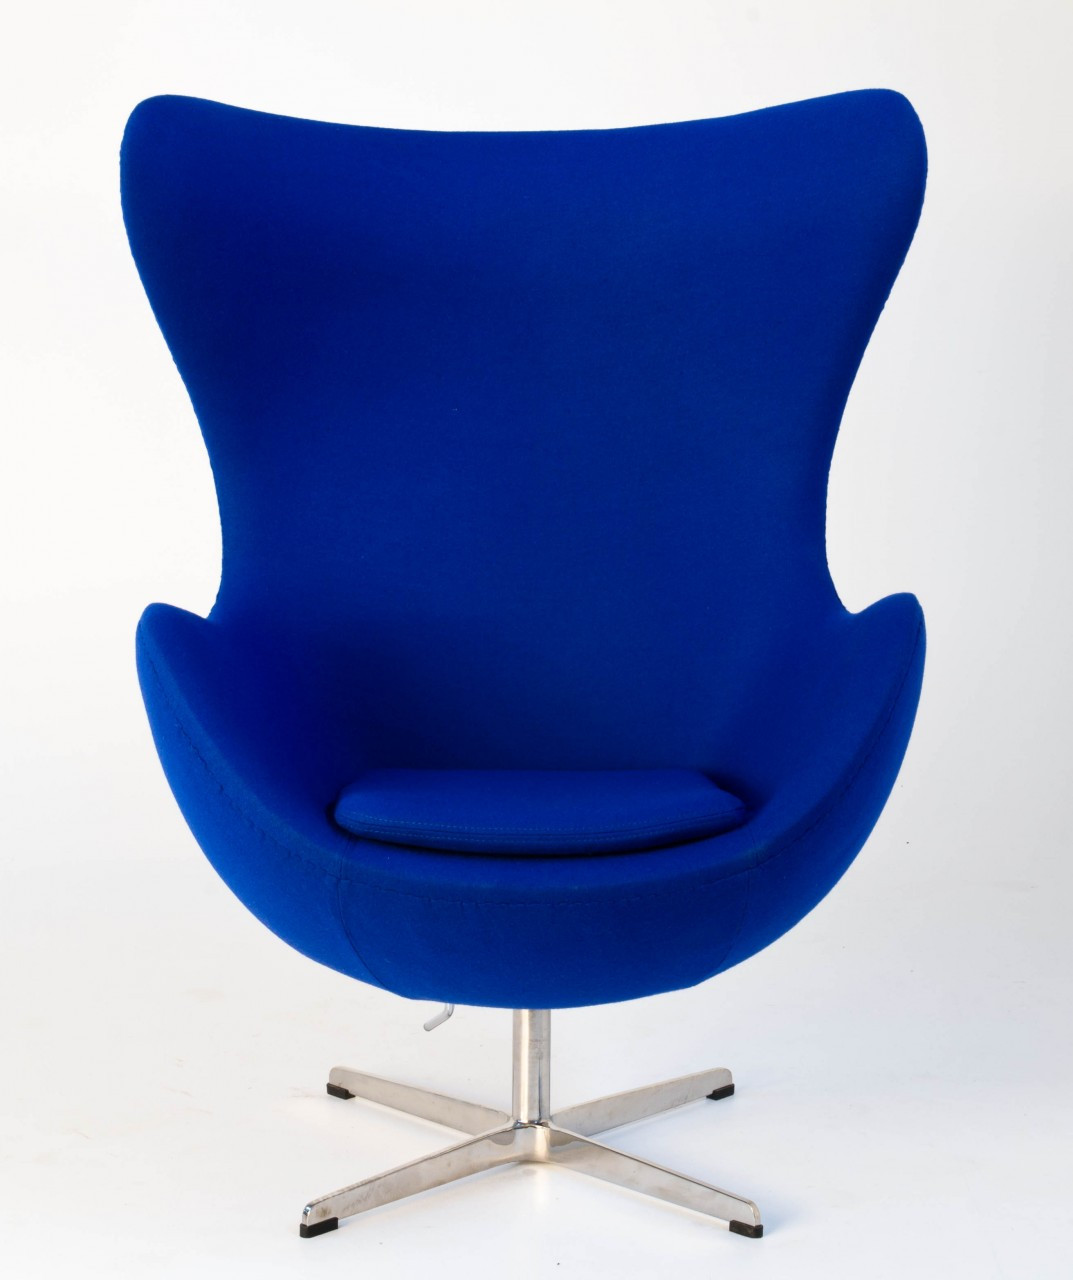 replica egg chair blue replica arne jacobsen egg chair replica blue egg chair. Black Bedroom Furniture Sets. Home Design Ideas